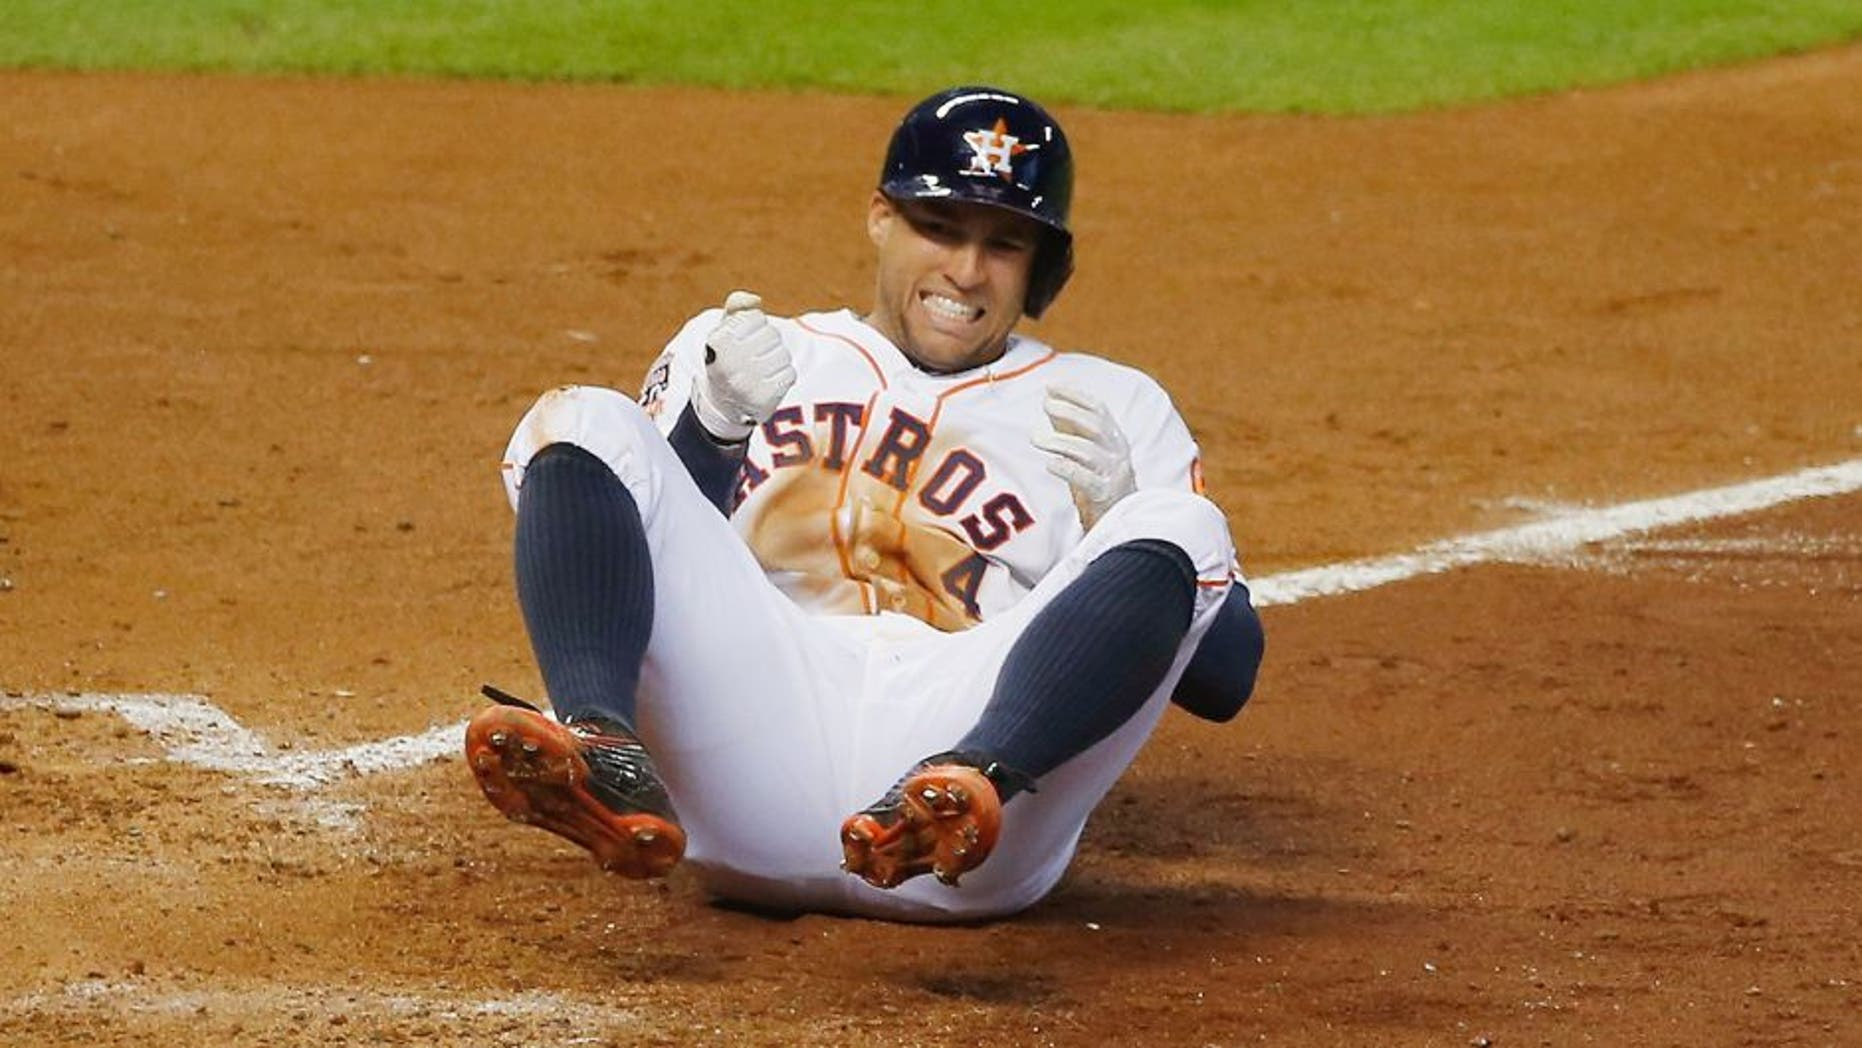 HOUSTON, TX - JULY 01: George Springer #4 of the Houston Astros gets hit by a pitch in the fifth inning during their game against the Kansas City Royals at Minute Maid Park on July 1, 2015 in Houston, Texas. (Photo by Scott Halleran/Getty Images)